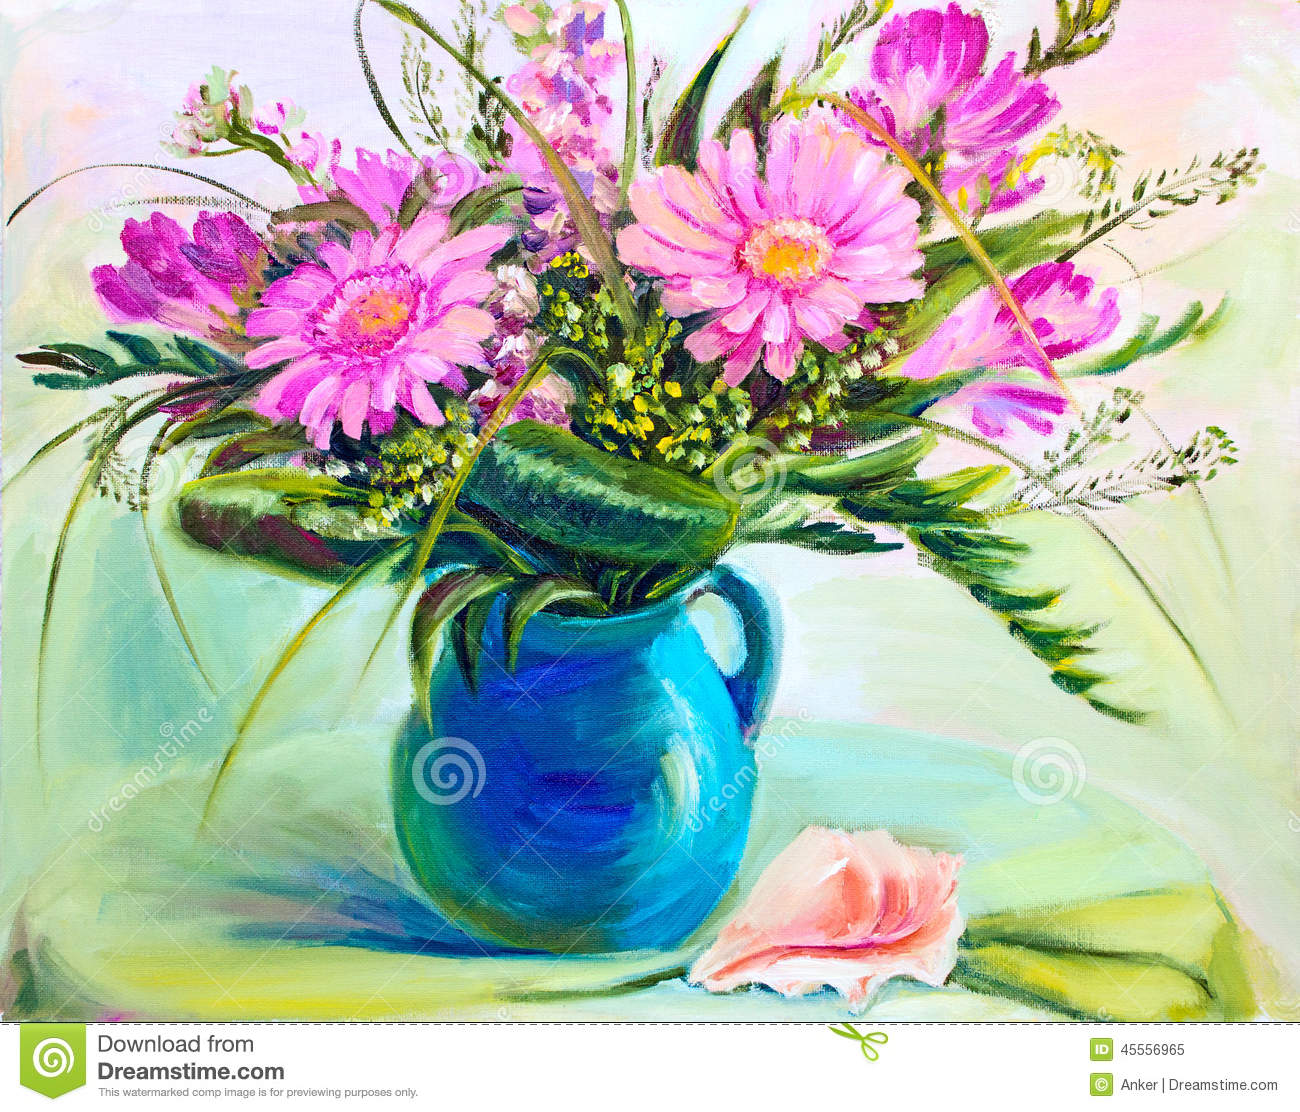 Flowers in vase oil painting stock illustration for How to paint flowers with oil paint